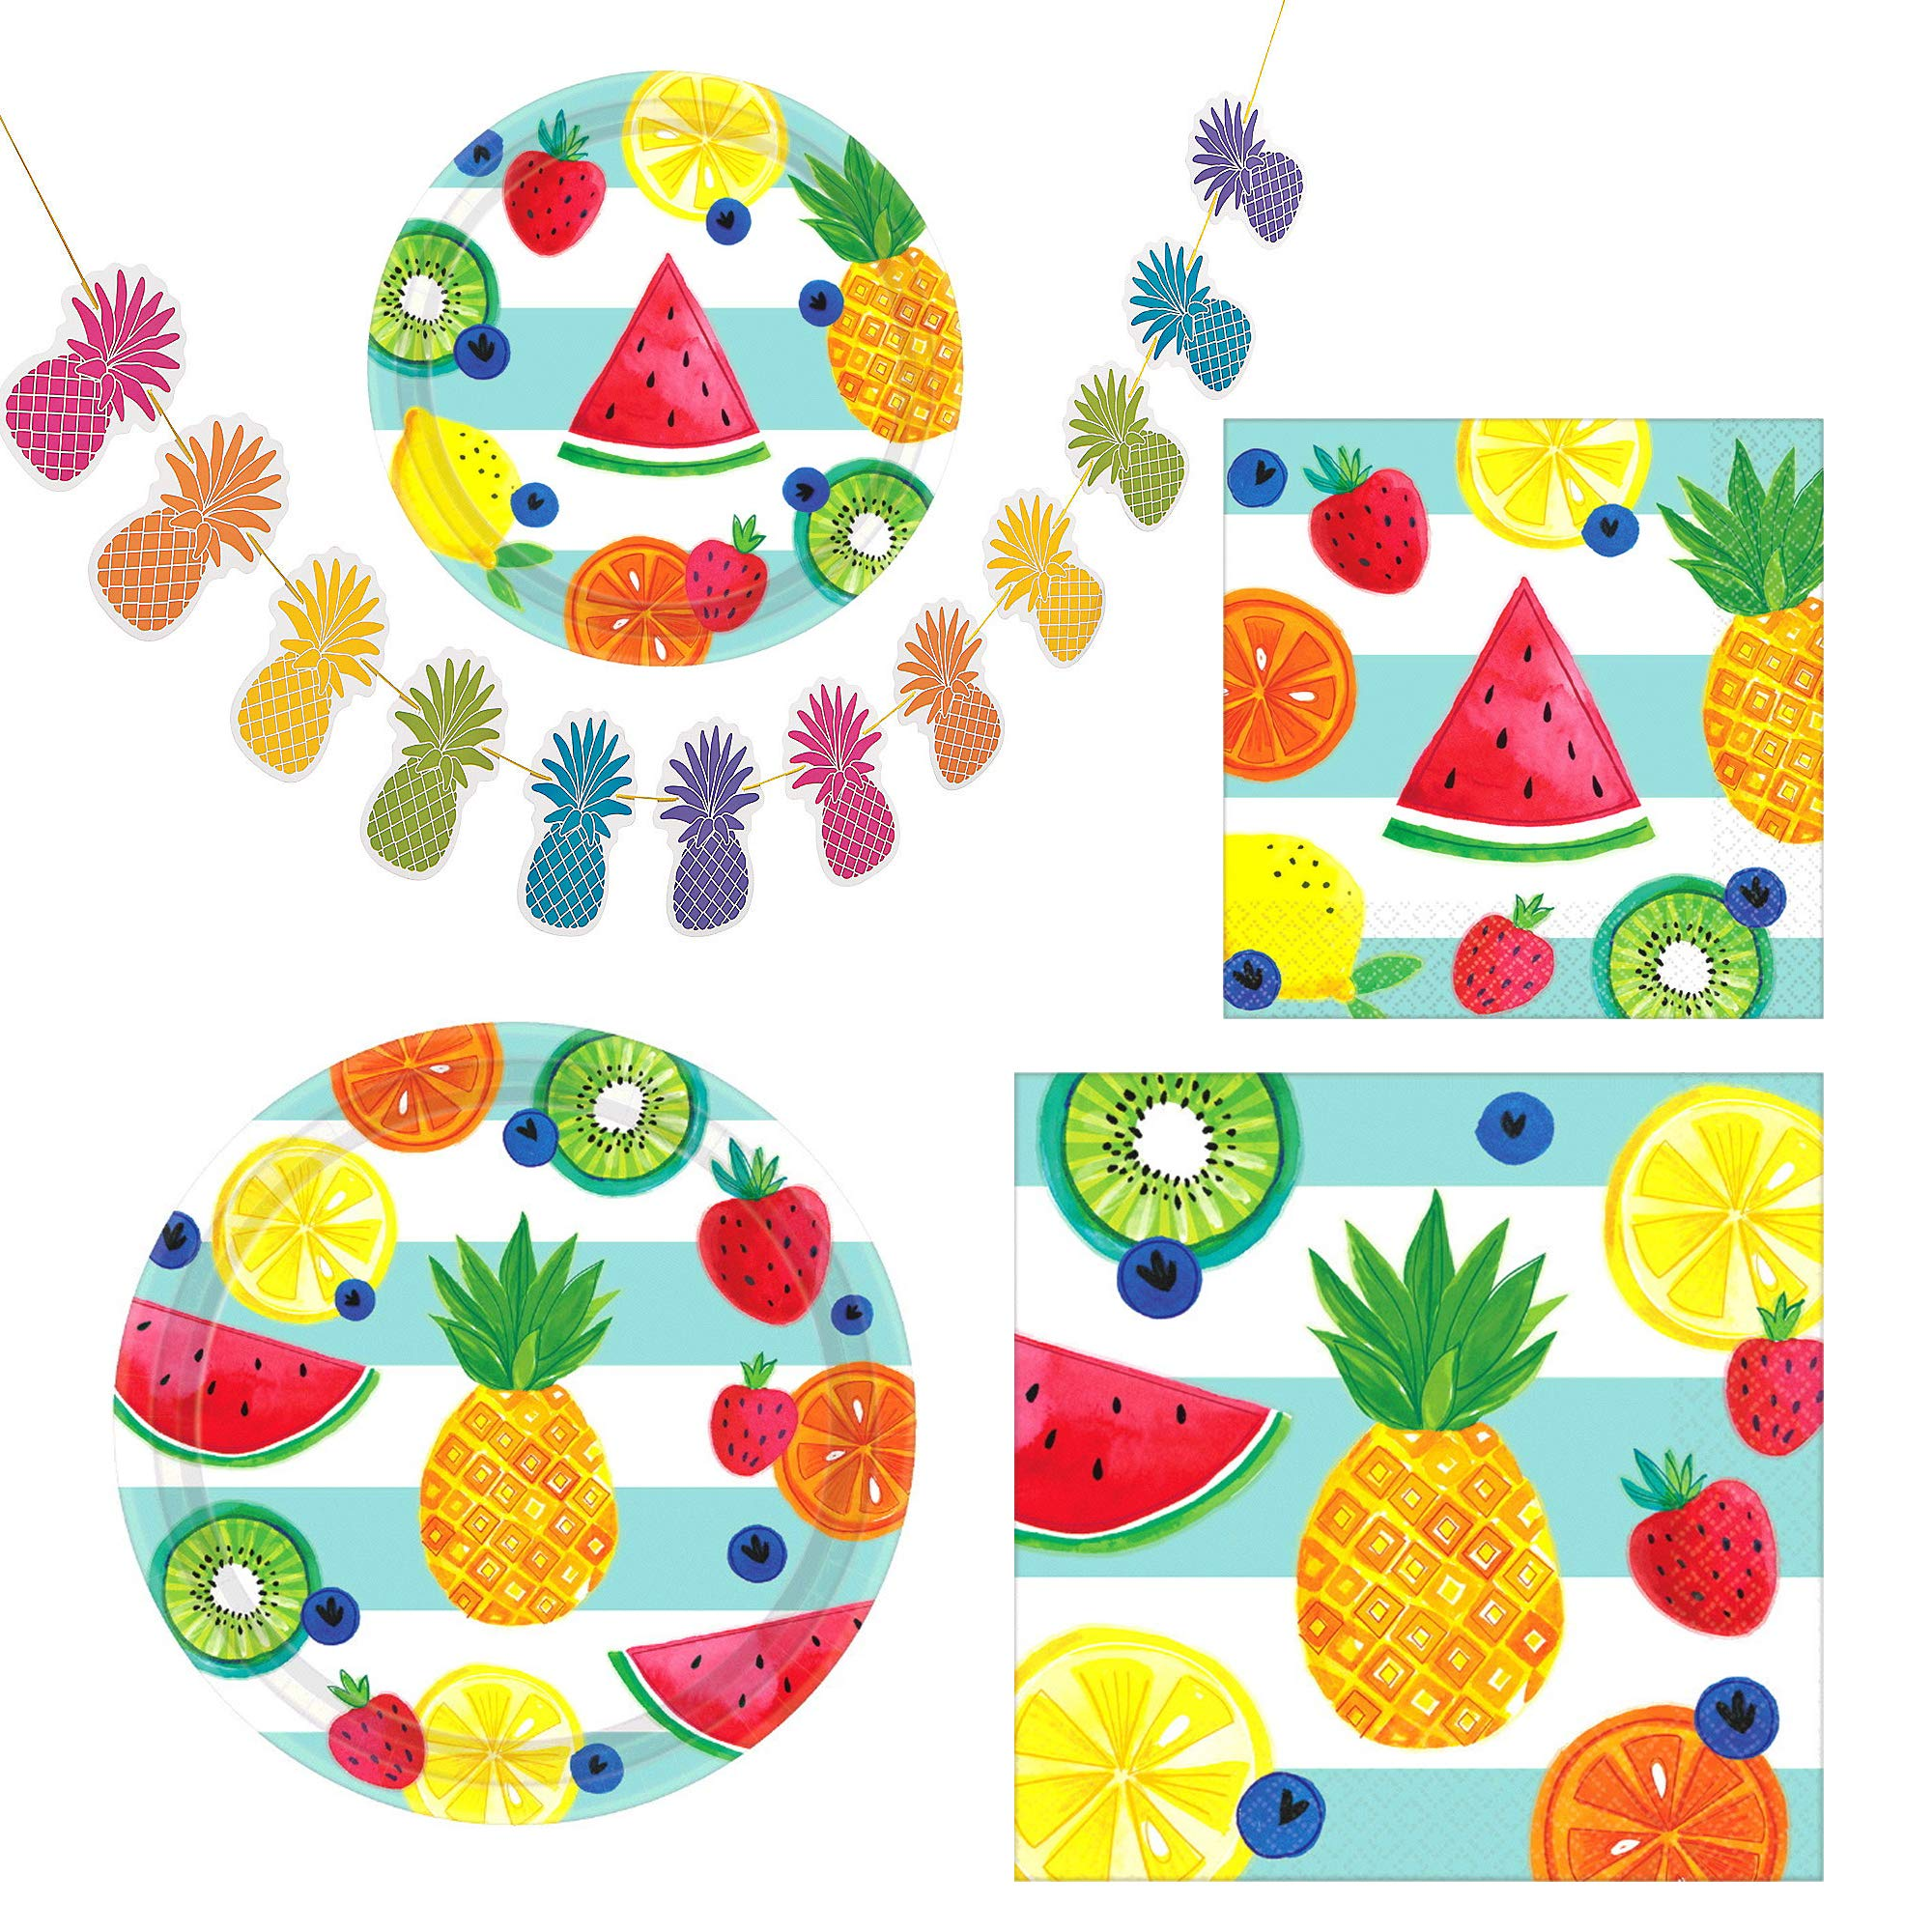 Fun Express Hello Summer Party Bundle | Luncheon & Beverage Napkins, Dinner & Dessert Plates, Garland | Great for Luau Themed Party, Kids Birthday Party, Hawaiian, Beach, Pool, Tutti Frutti Party